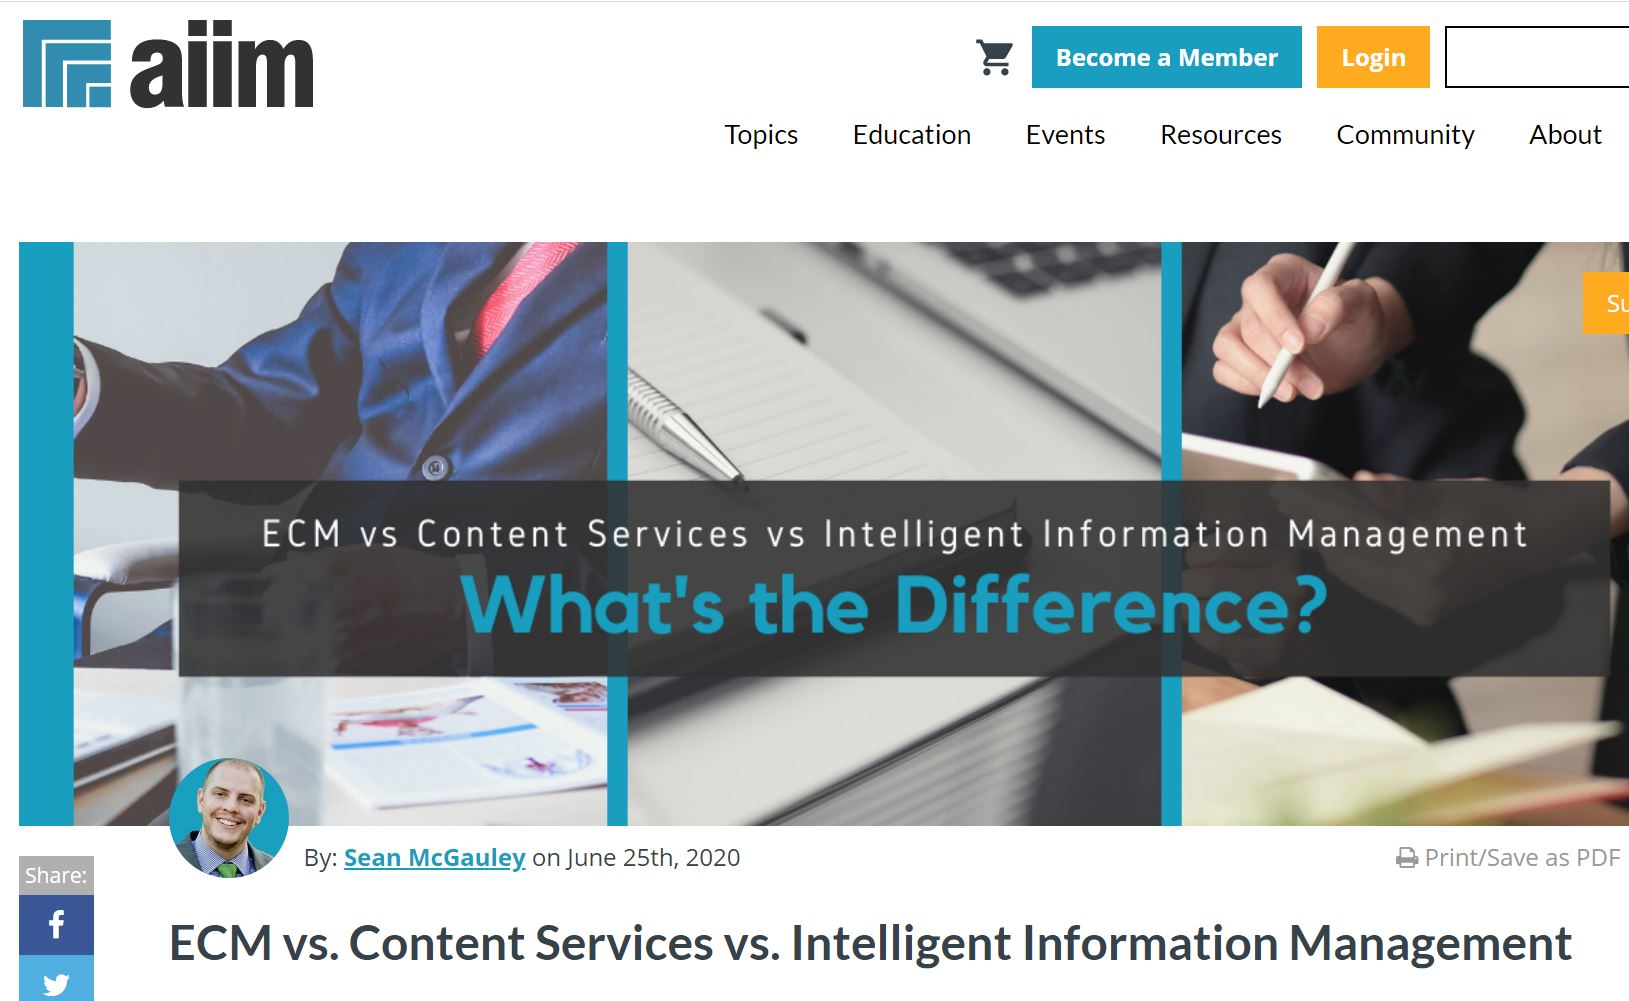 AIIM: ECM vs. Content Services vs. Intelligent Information Management